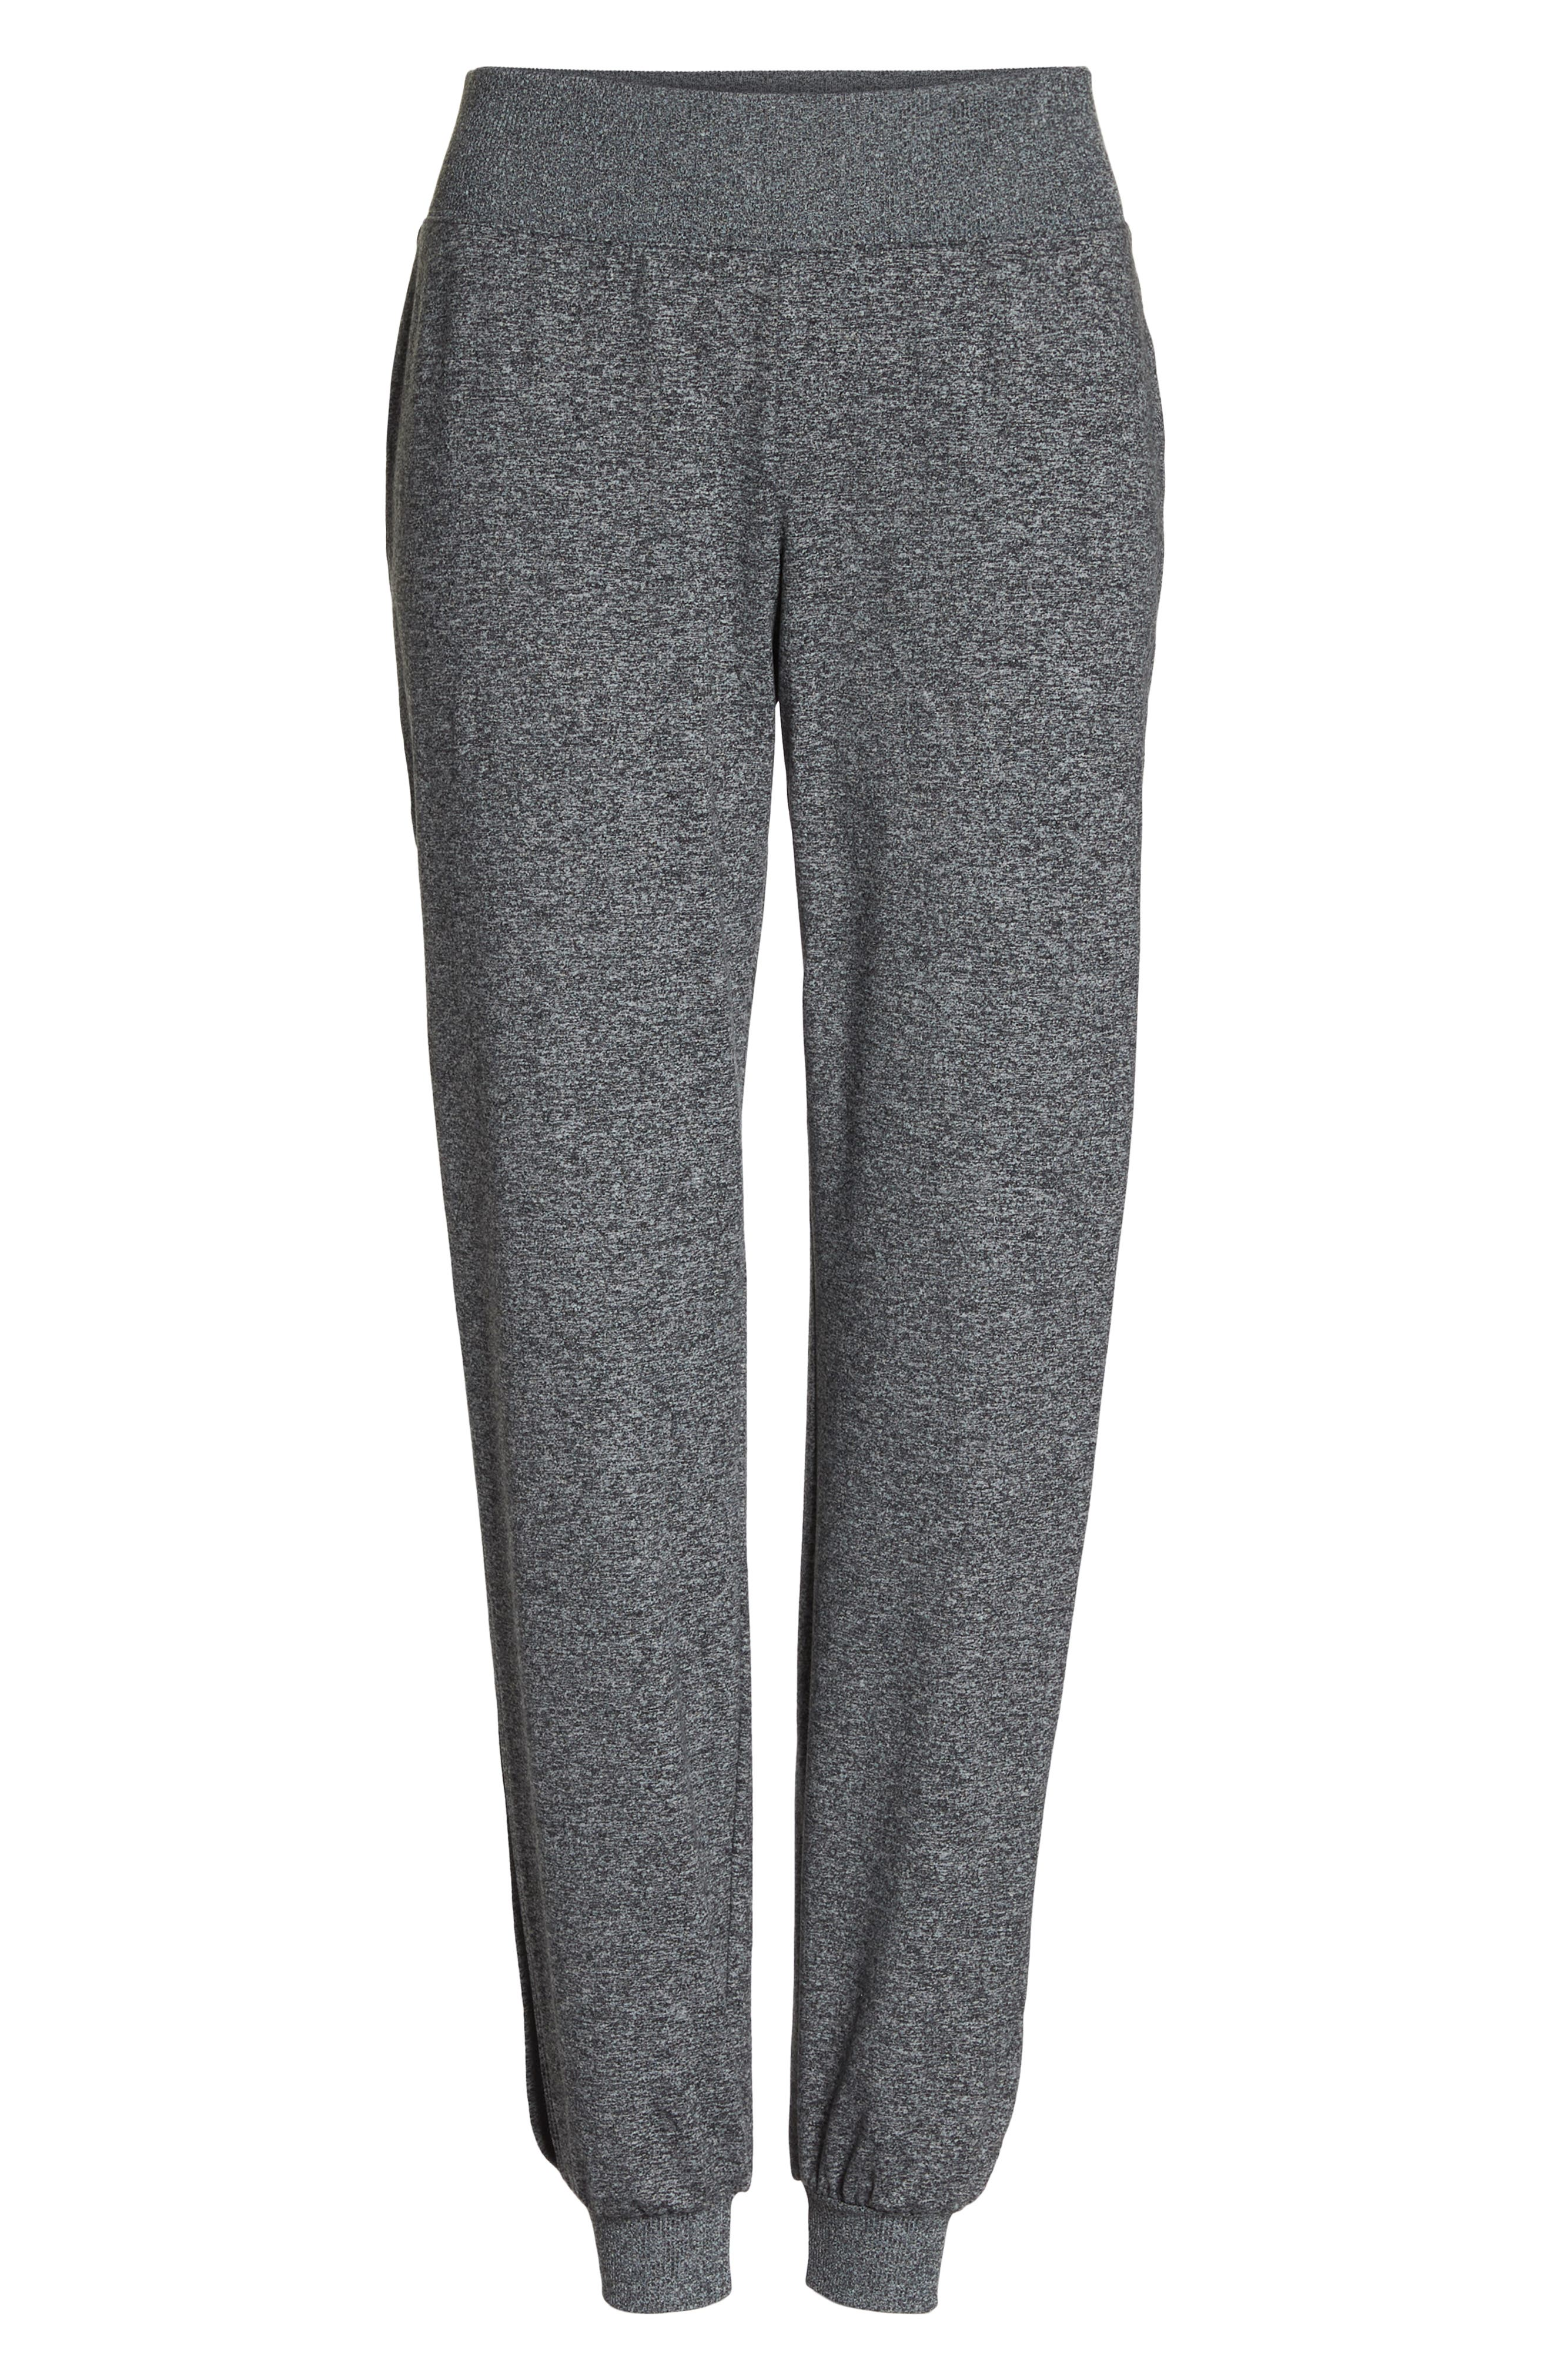 Re-Covery Recycled Lounge Pants,                             Alternate thumbnail 7, color,                             001